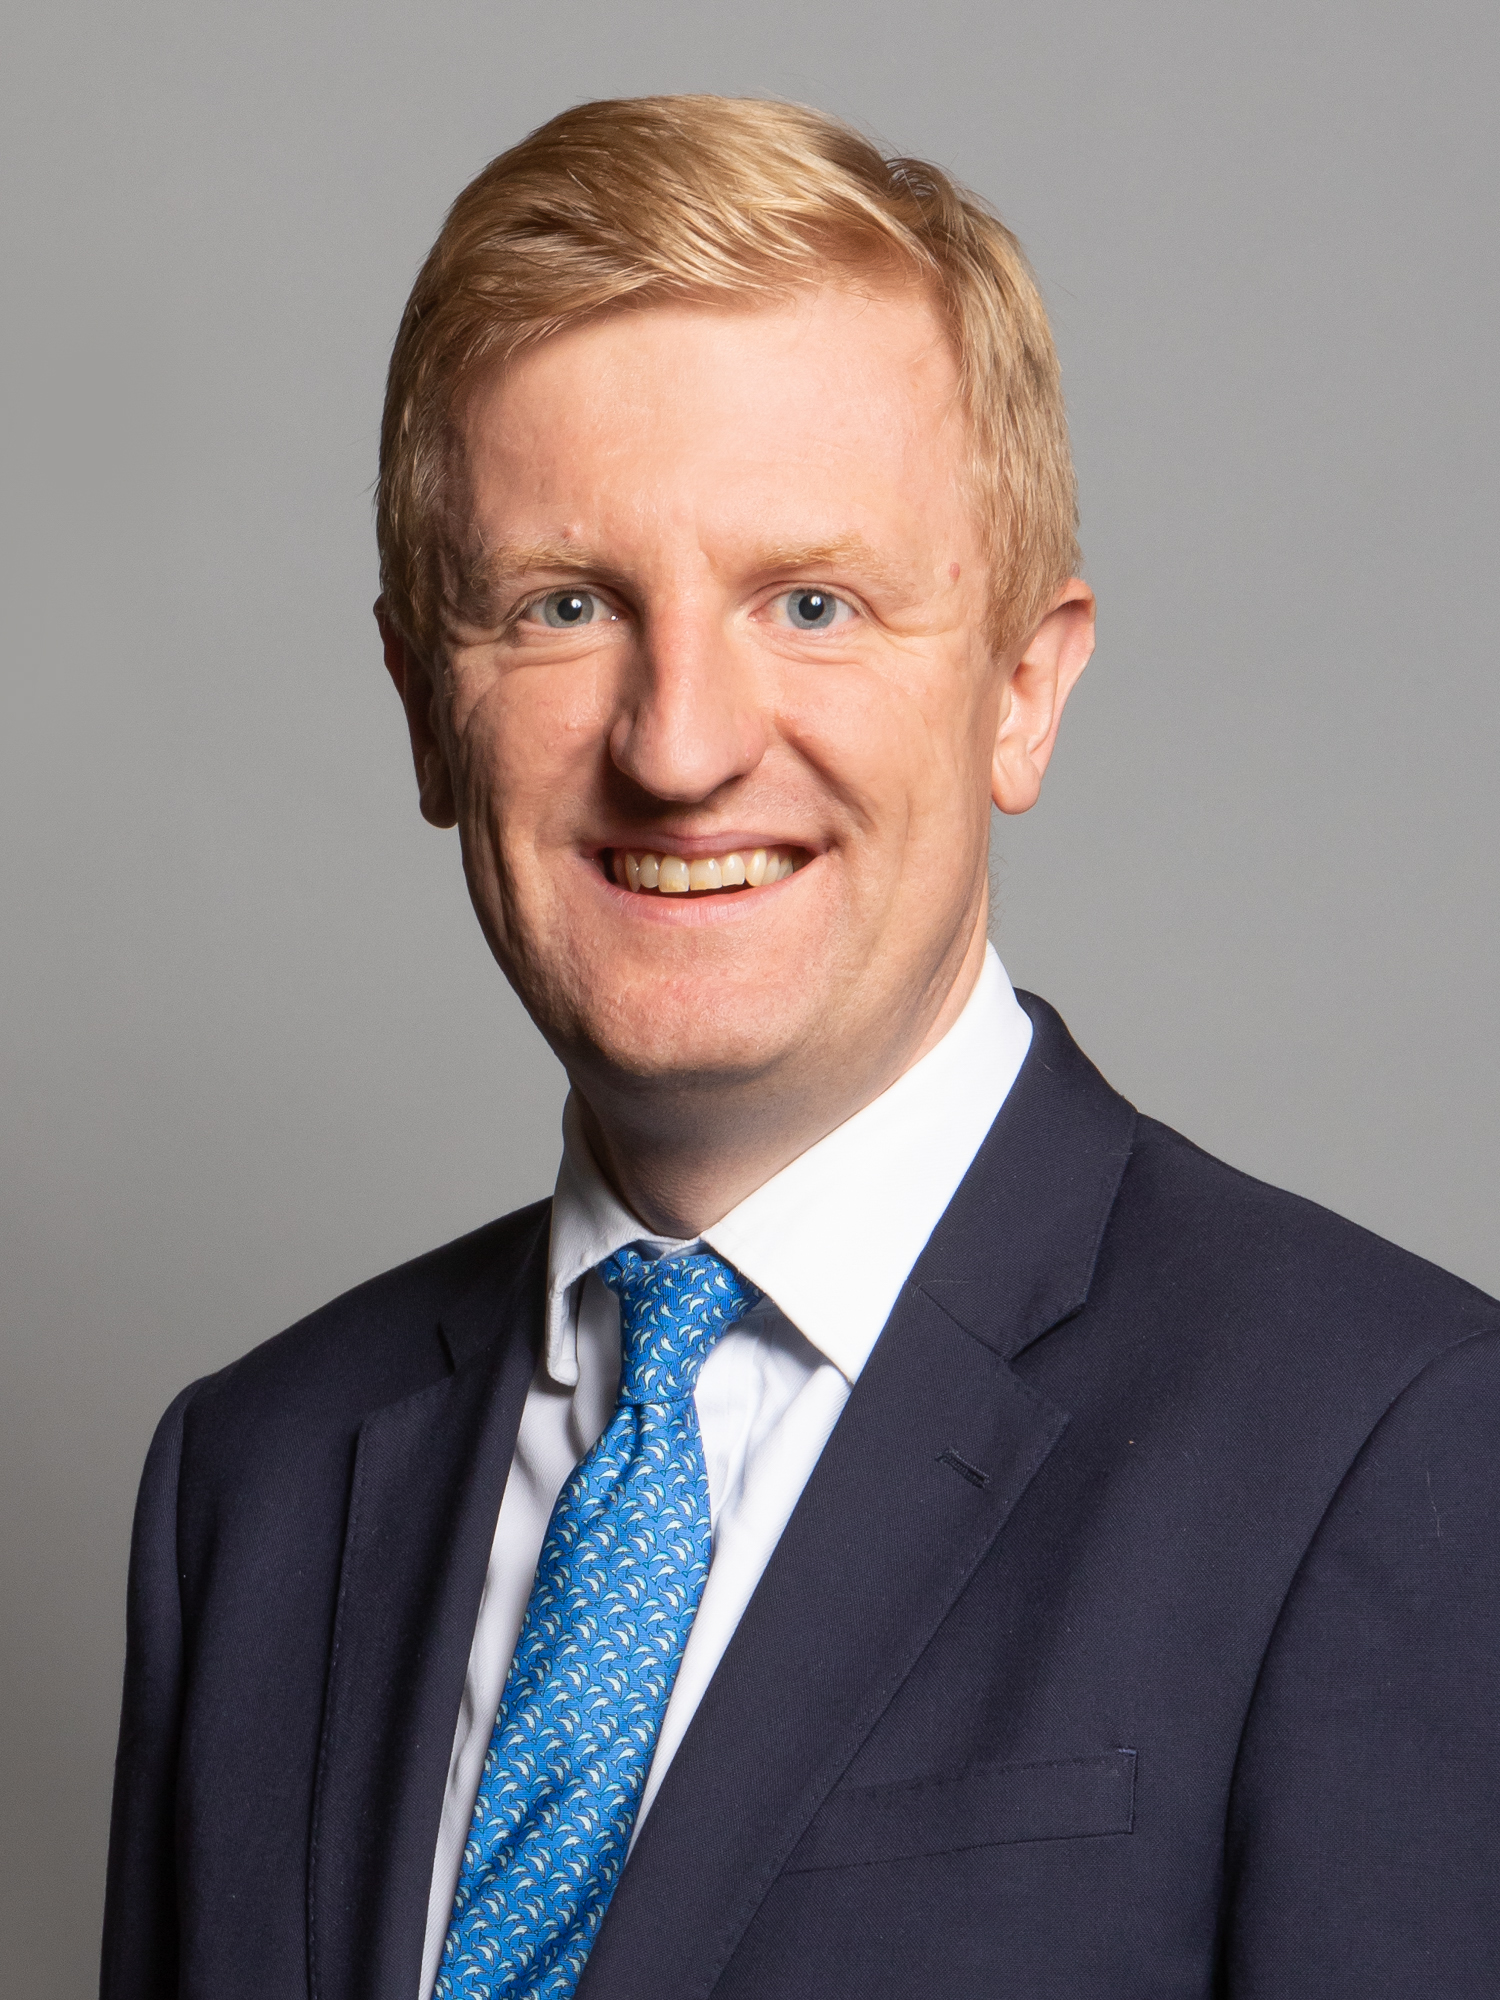 The cabinet minister responsible for sport, culture secretary Oliver Dowden, on Friday held the first formal meeting of a cross-sports body set up to examine the practicalities of resuming professional sport.